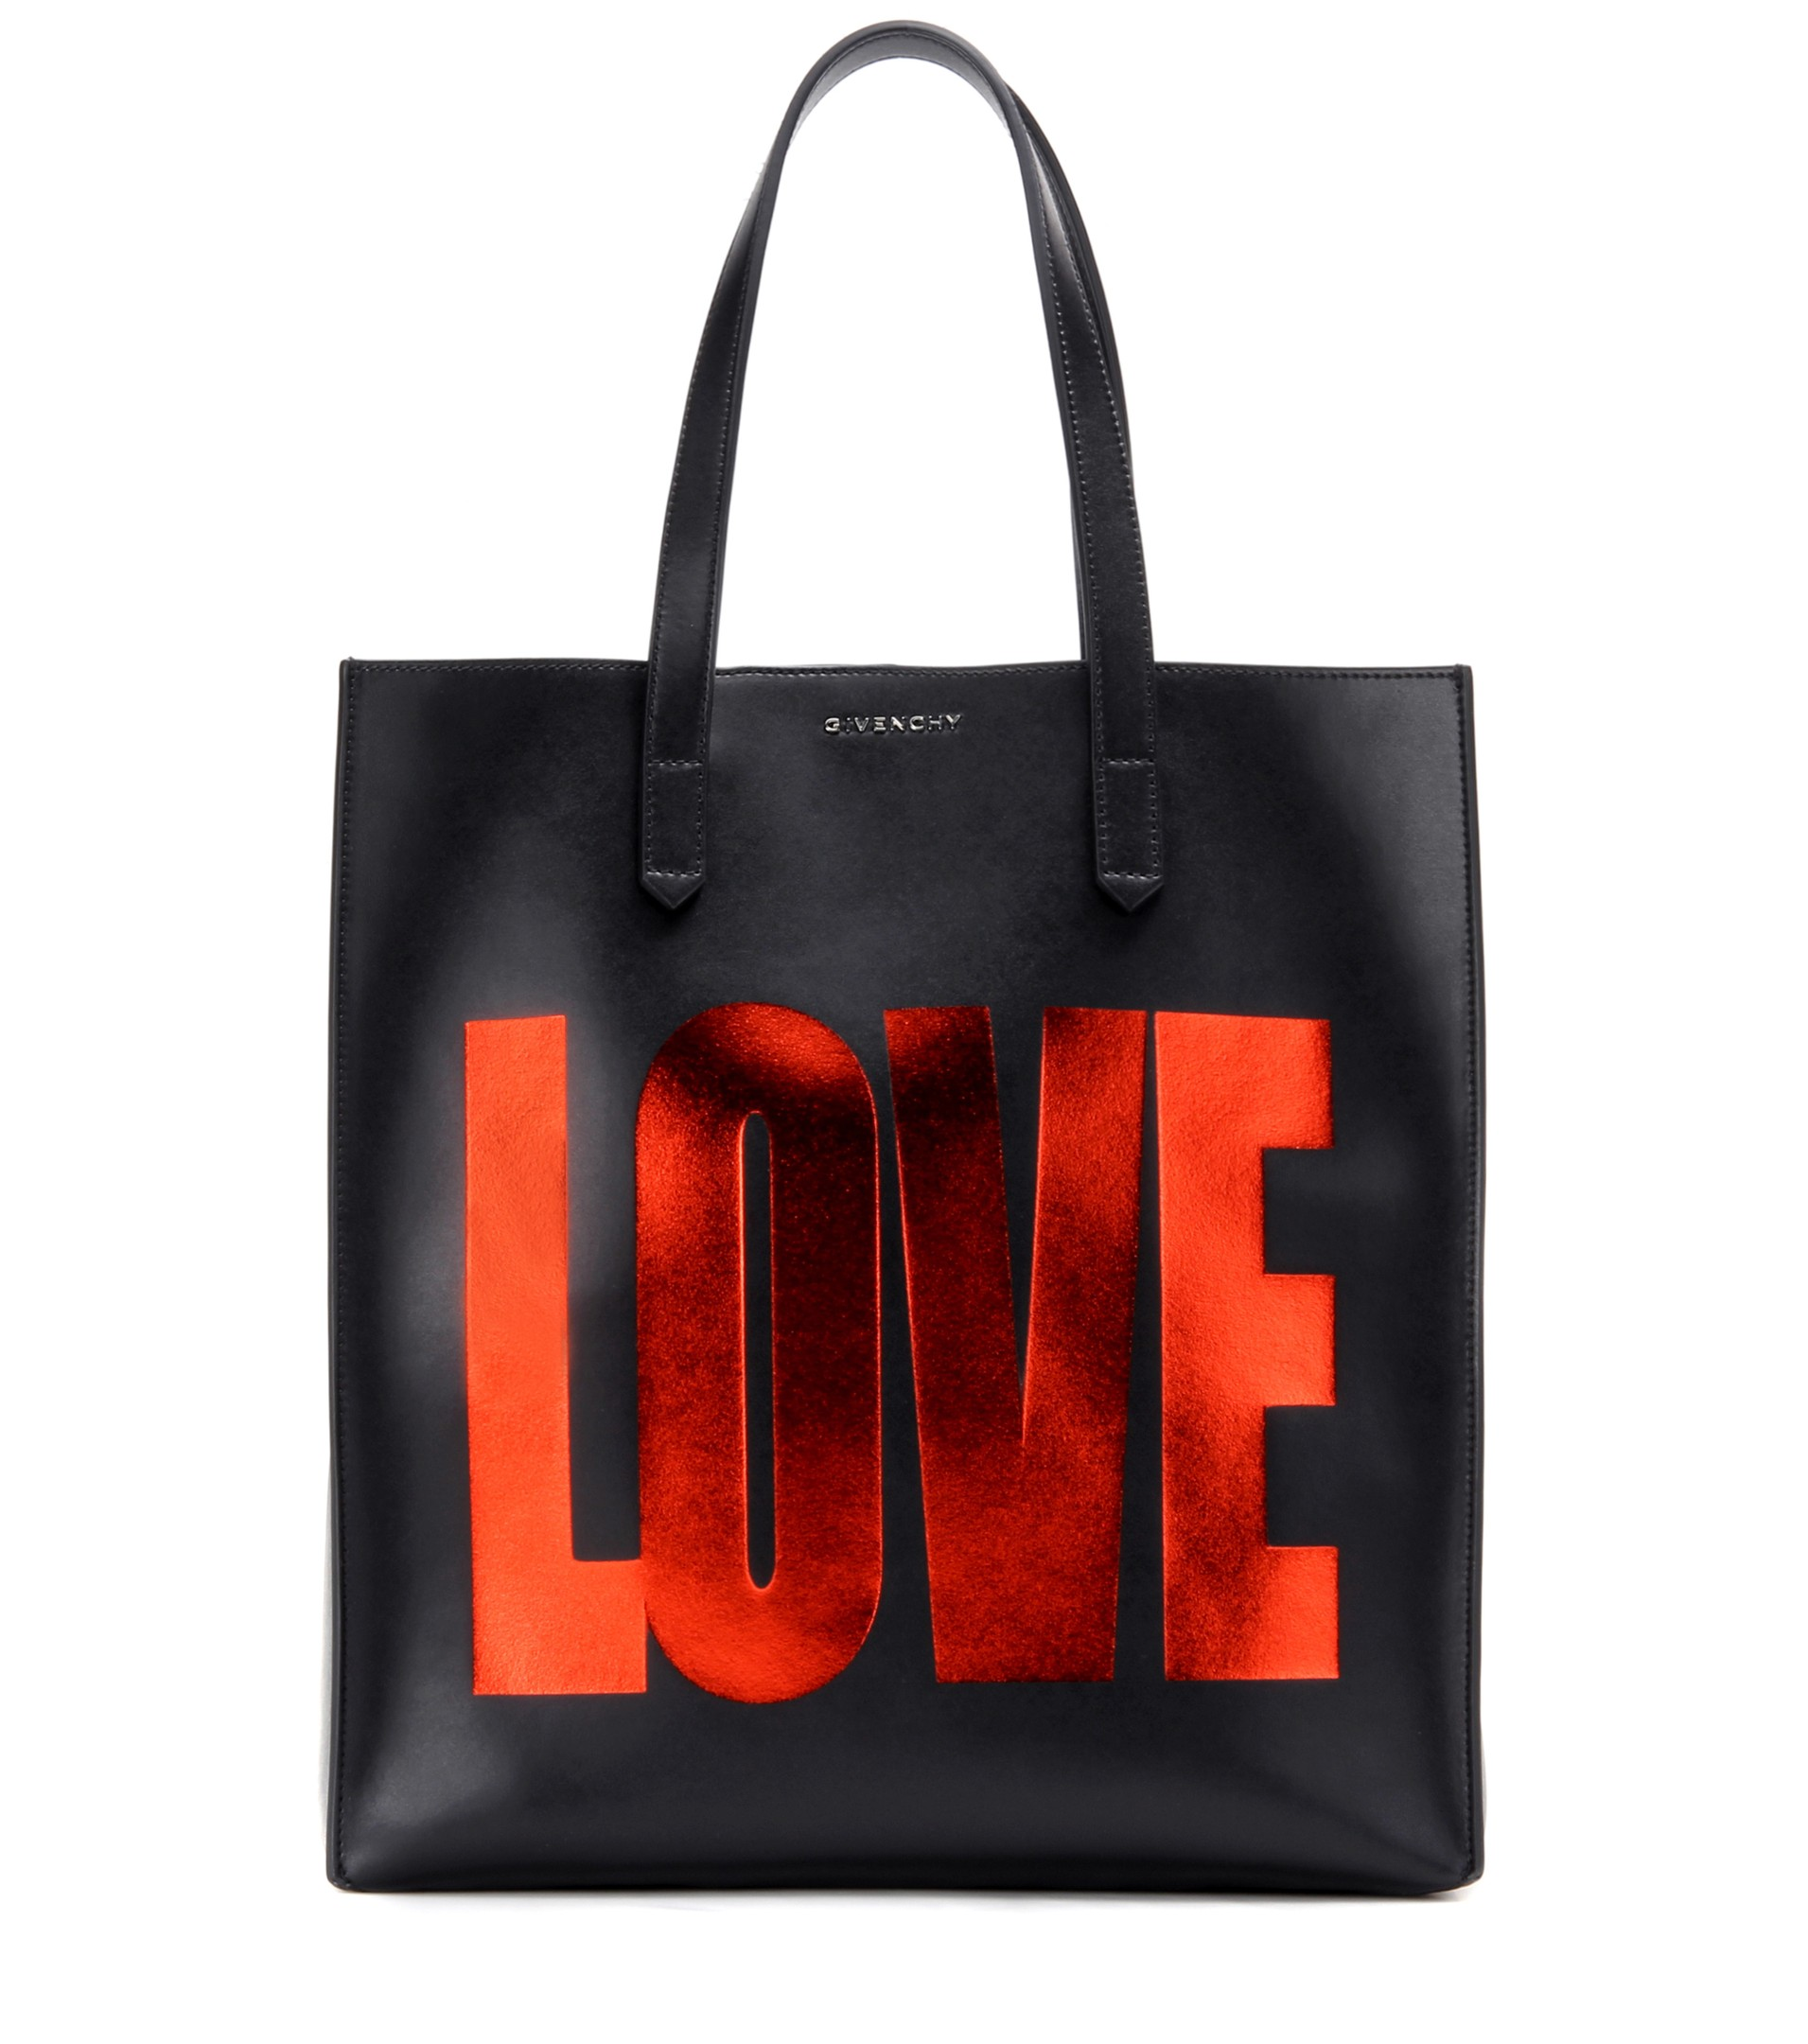 Givenchy Basic love printed black leather tote - designer tote bags